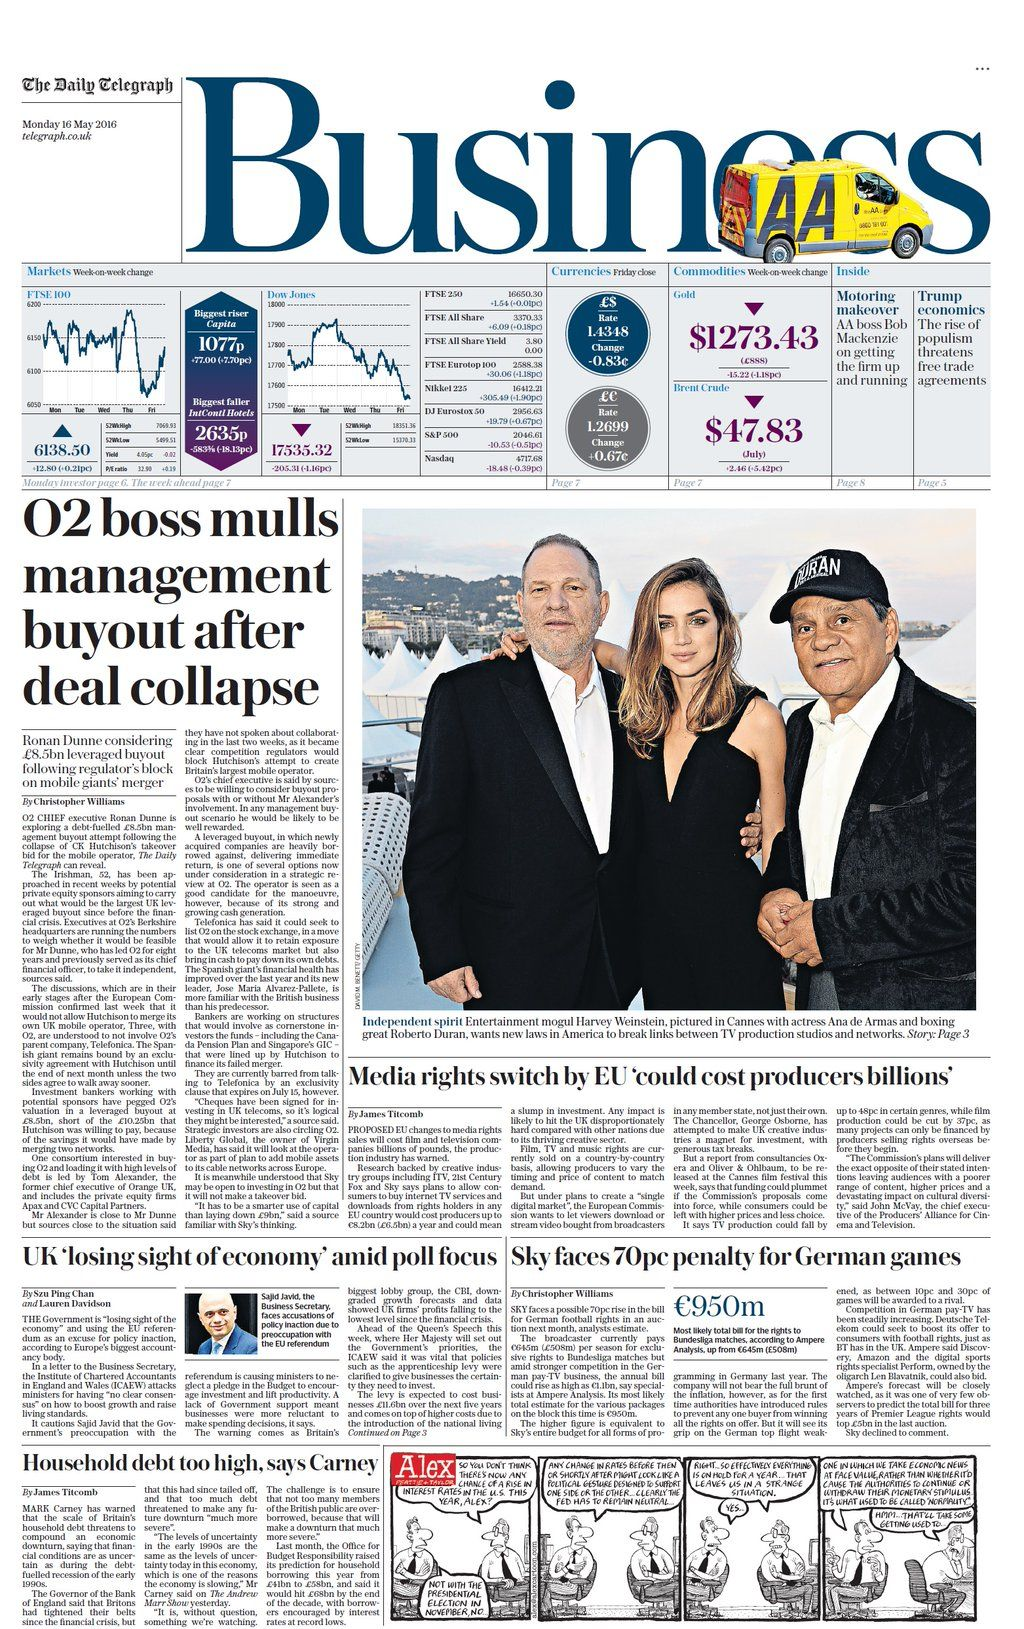 Monday's Telegraph Business: O2 boss mulls management buyout after deal collapse #tomorrowspaperstoday #bbcpapers https://t.co/gqLoqpdepd